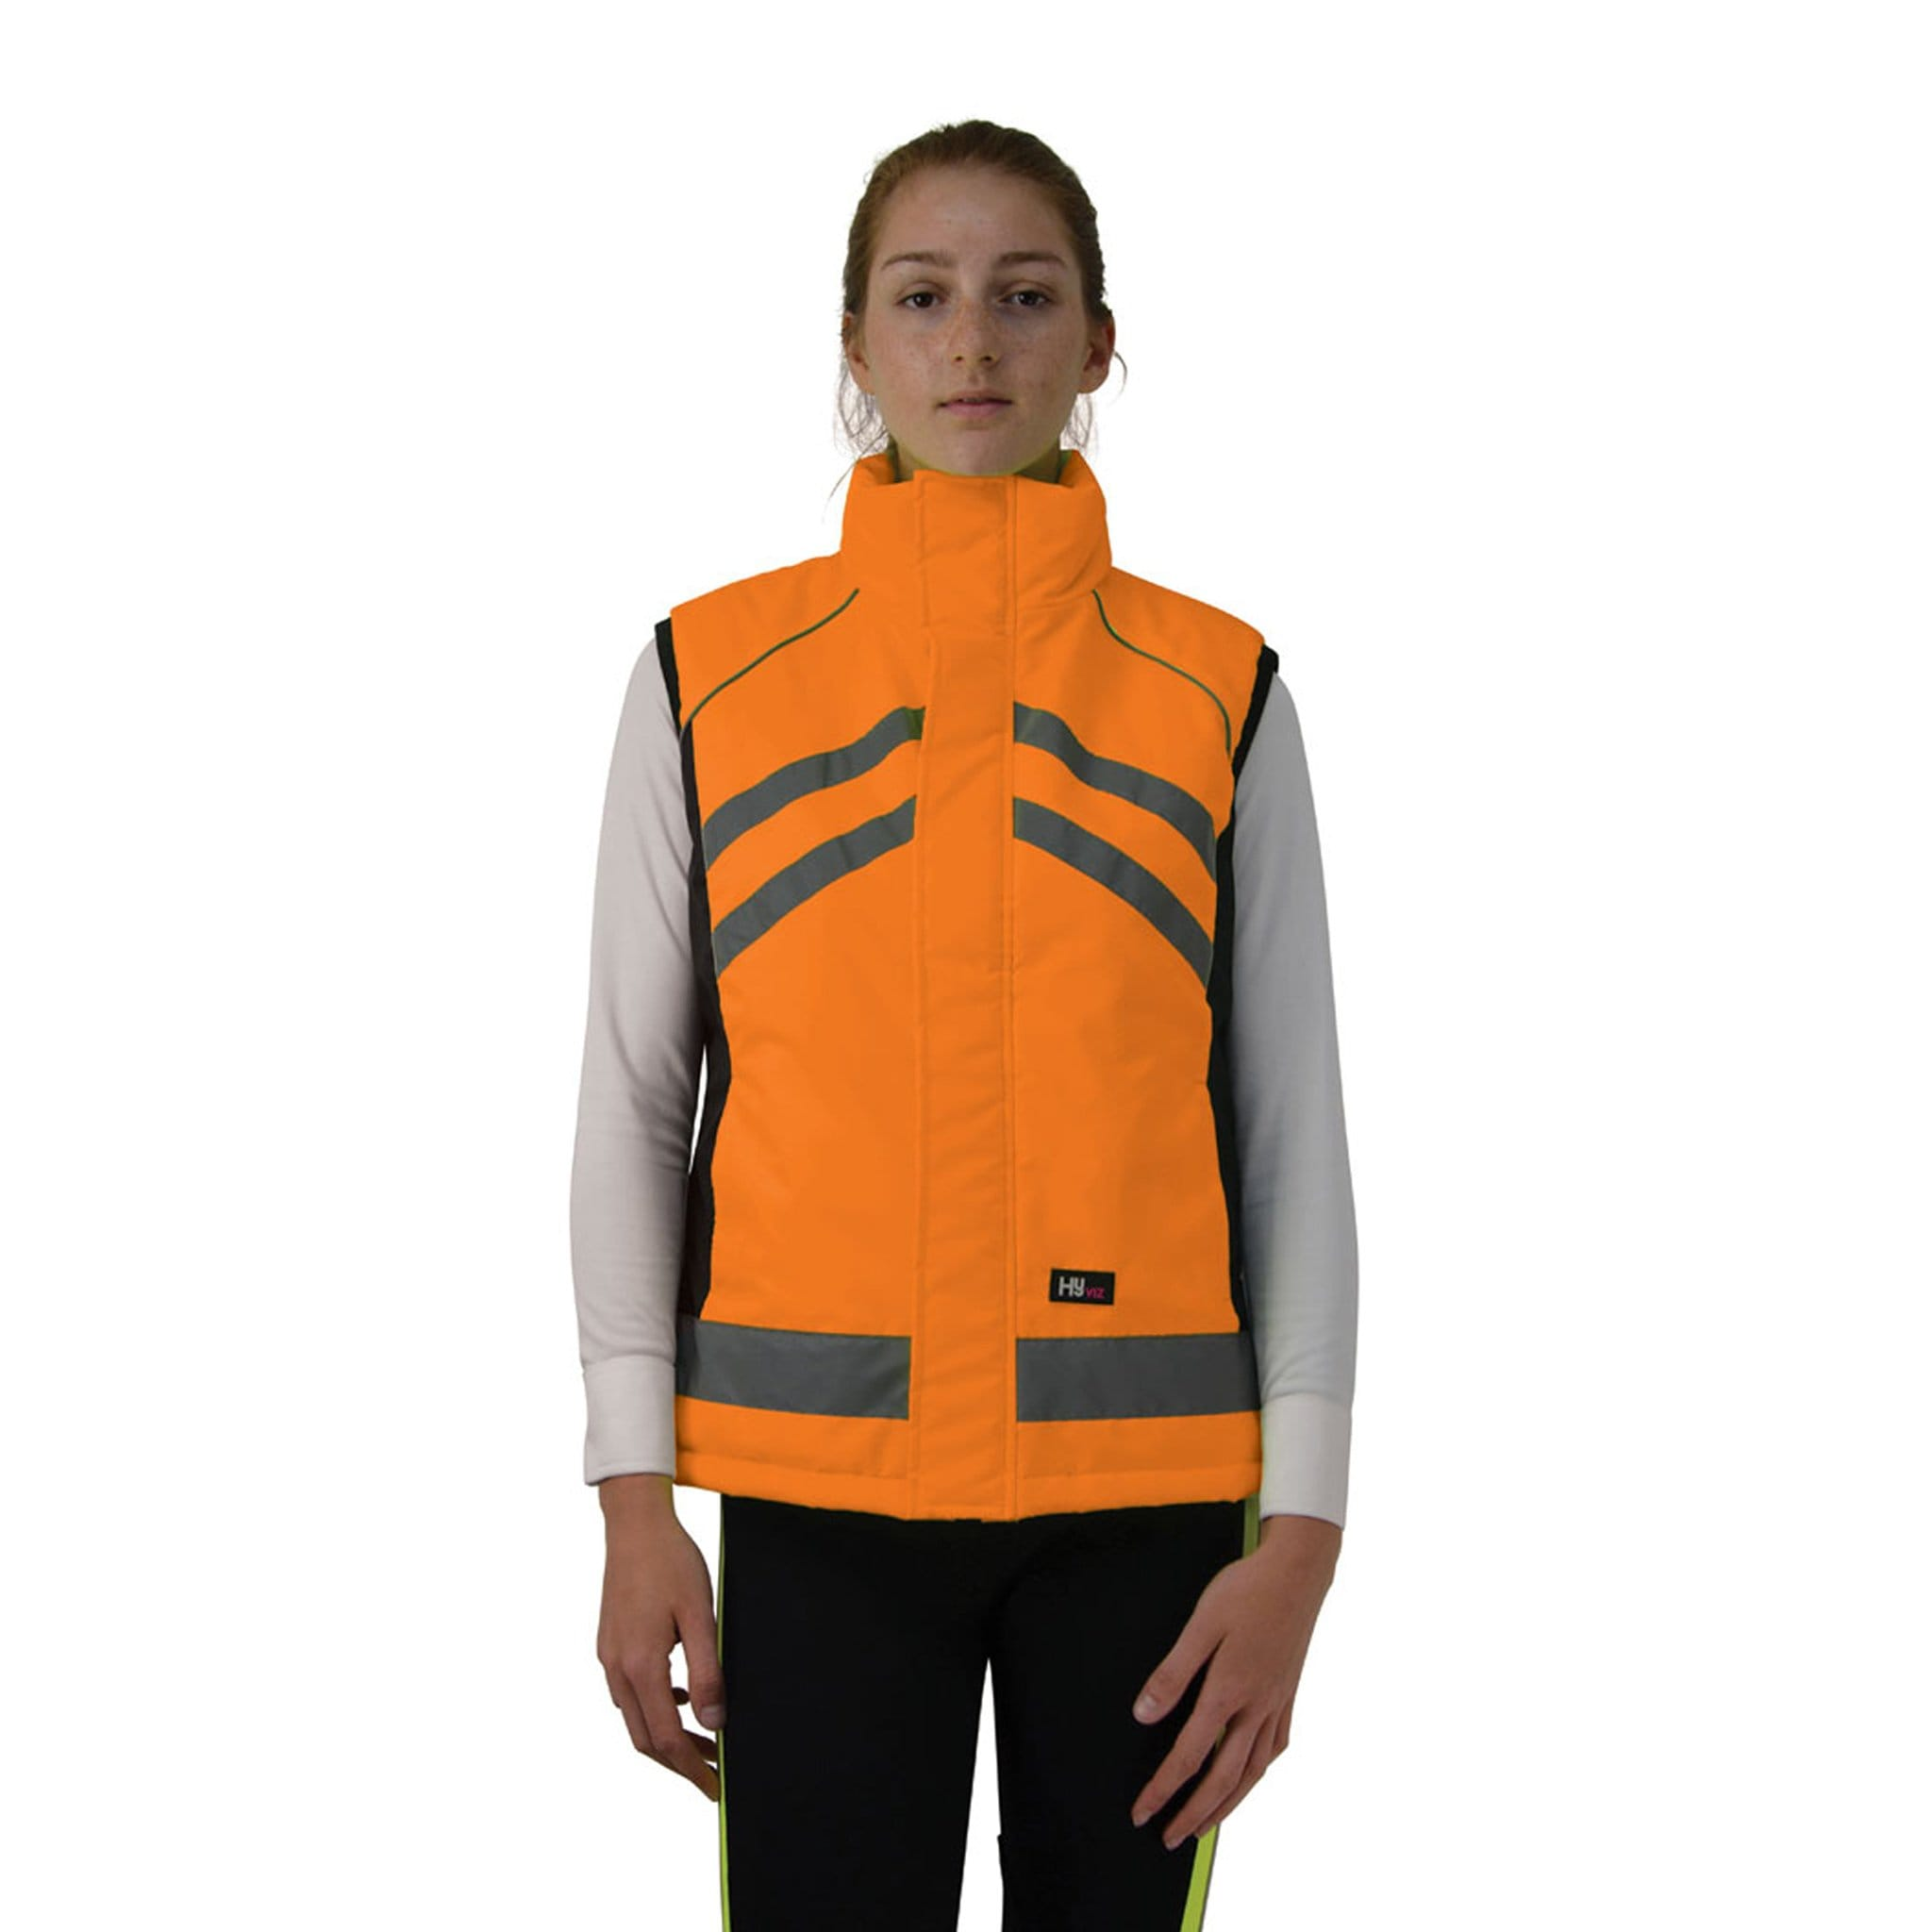 HyVIZ Padded Gilet Orange 22905 Front View